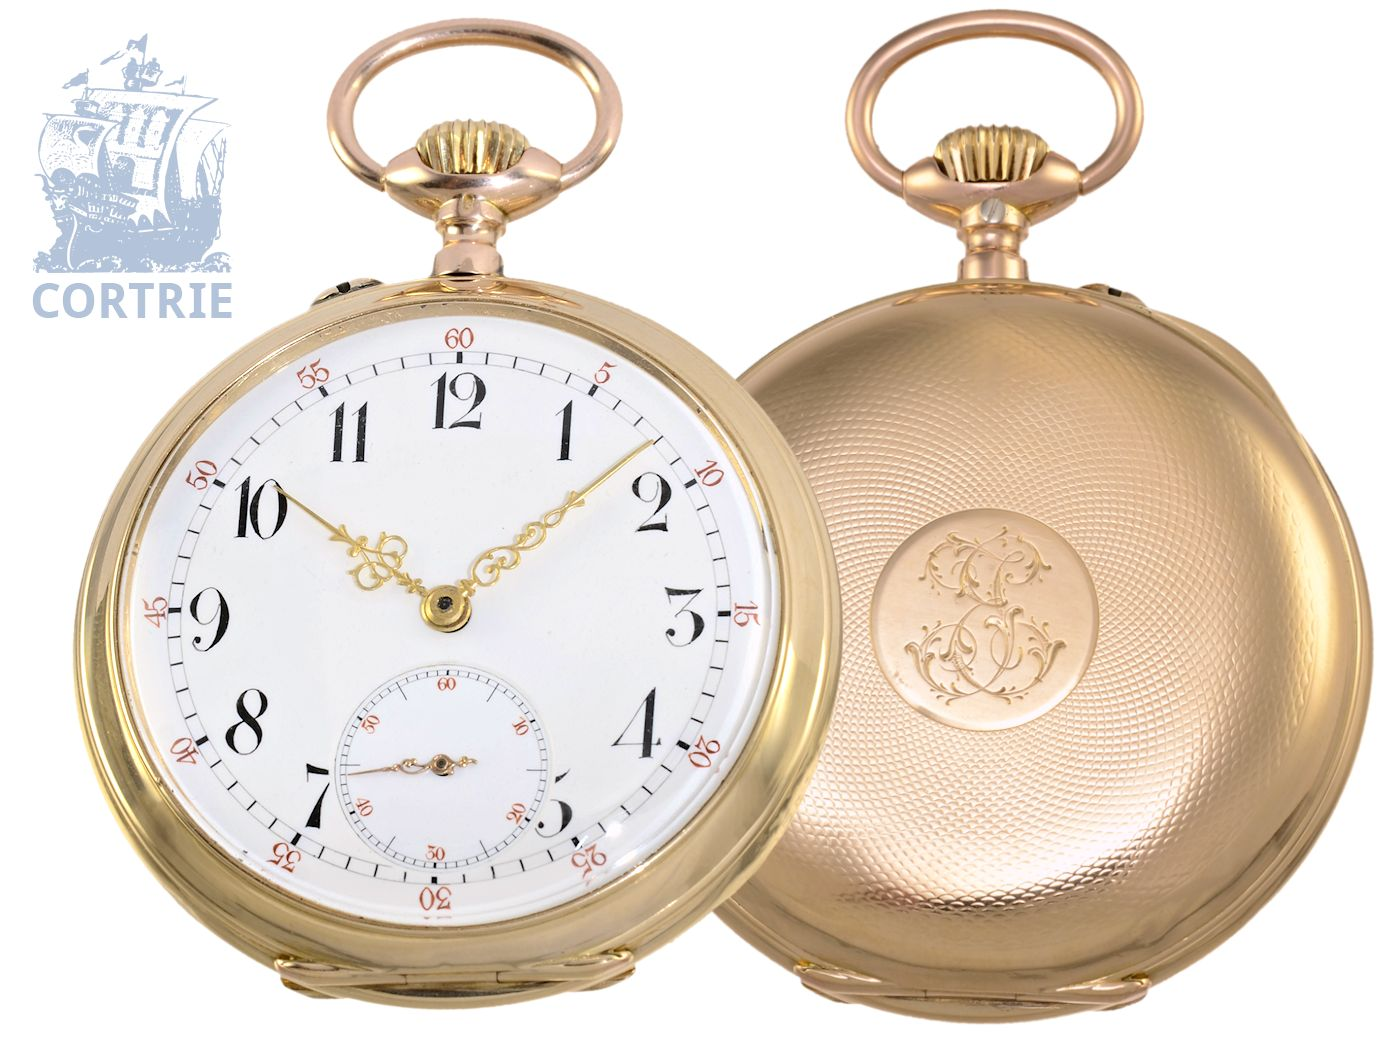 Pocket watch: German precision pocket watch Union bell Dürrstein Dresden-